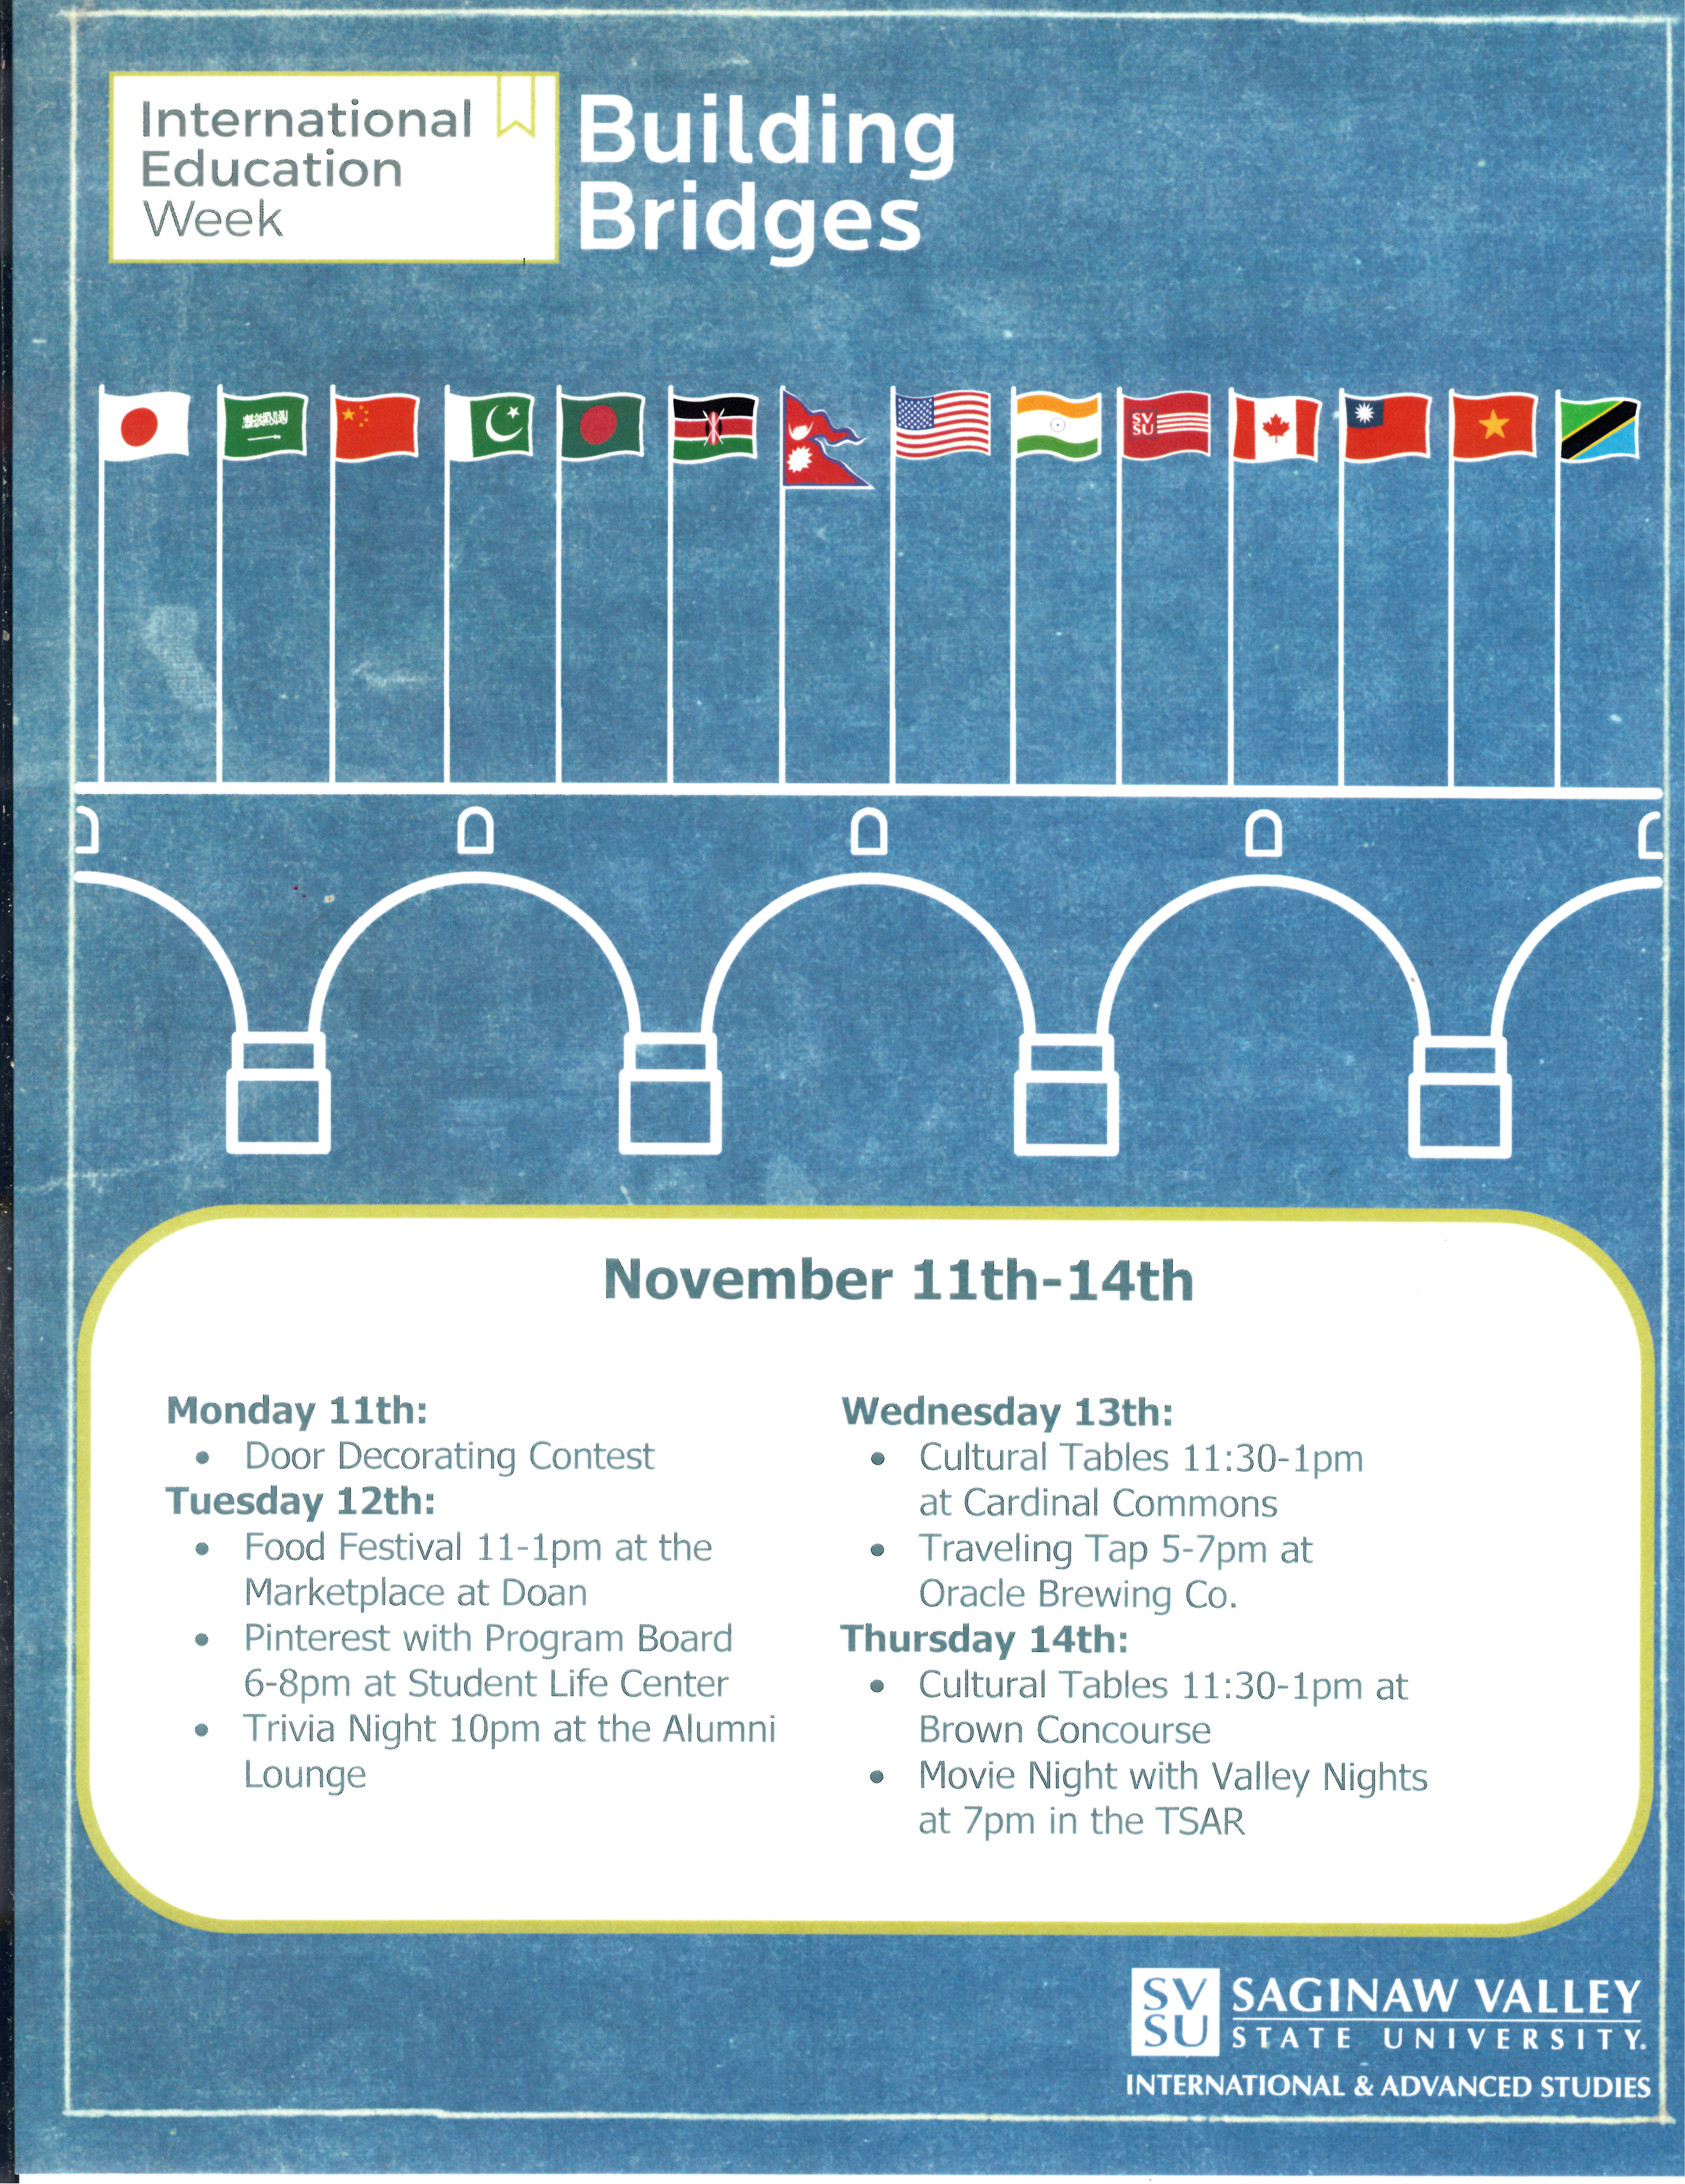 International Week on November 11 to 14